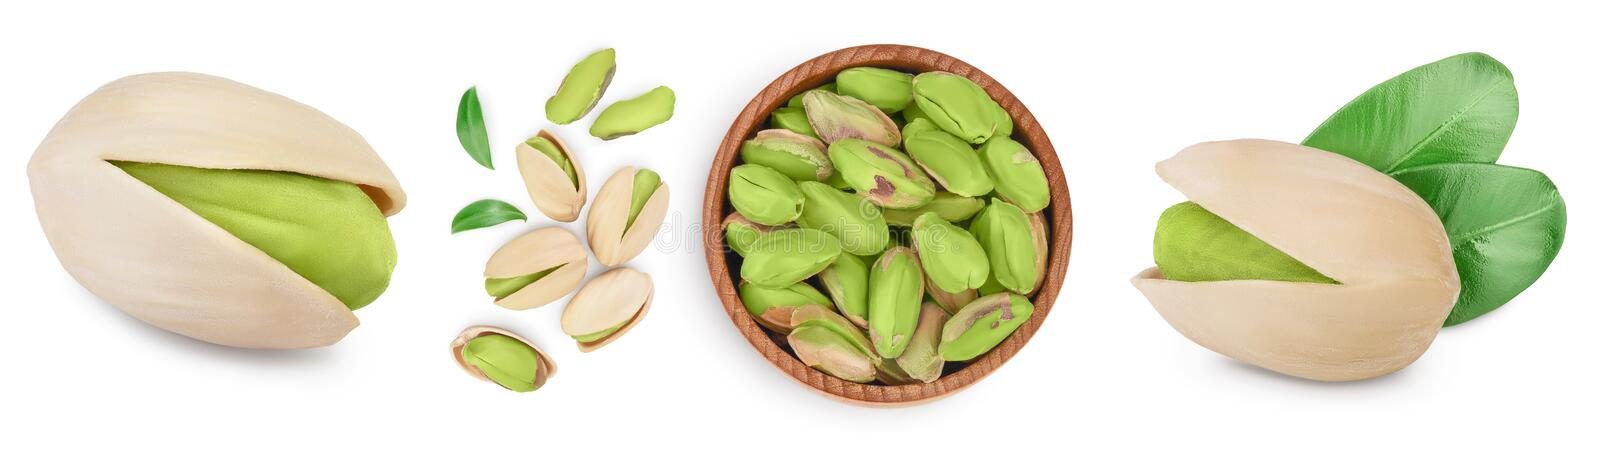 Pistachio with leaves isolated on white background with clipping path and full depth of field. Set r collection stock images